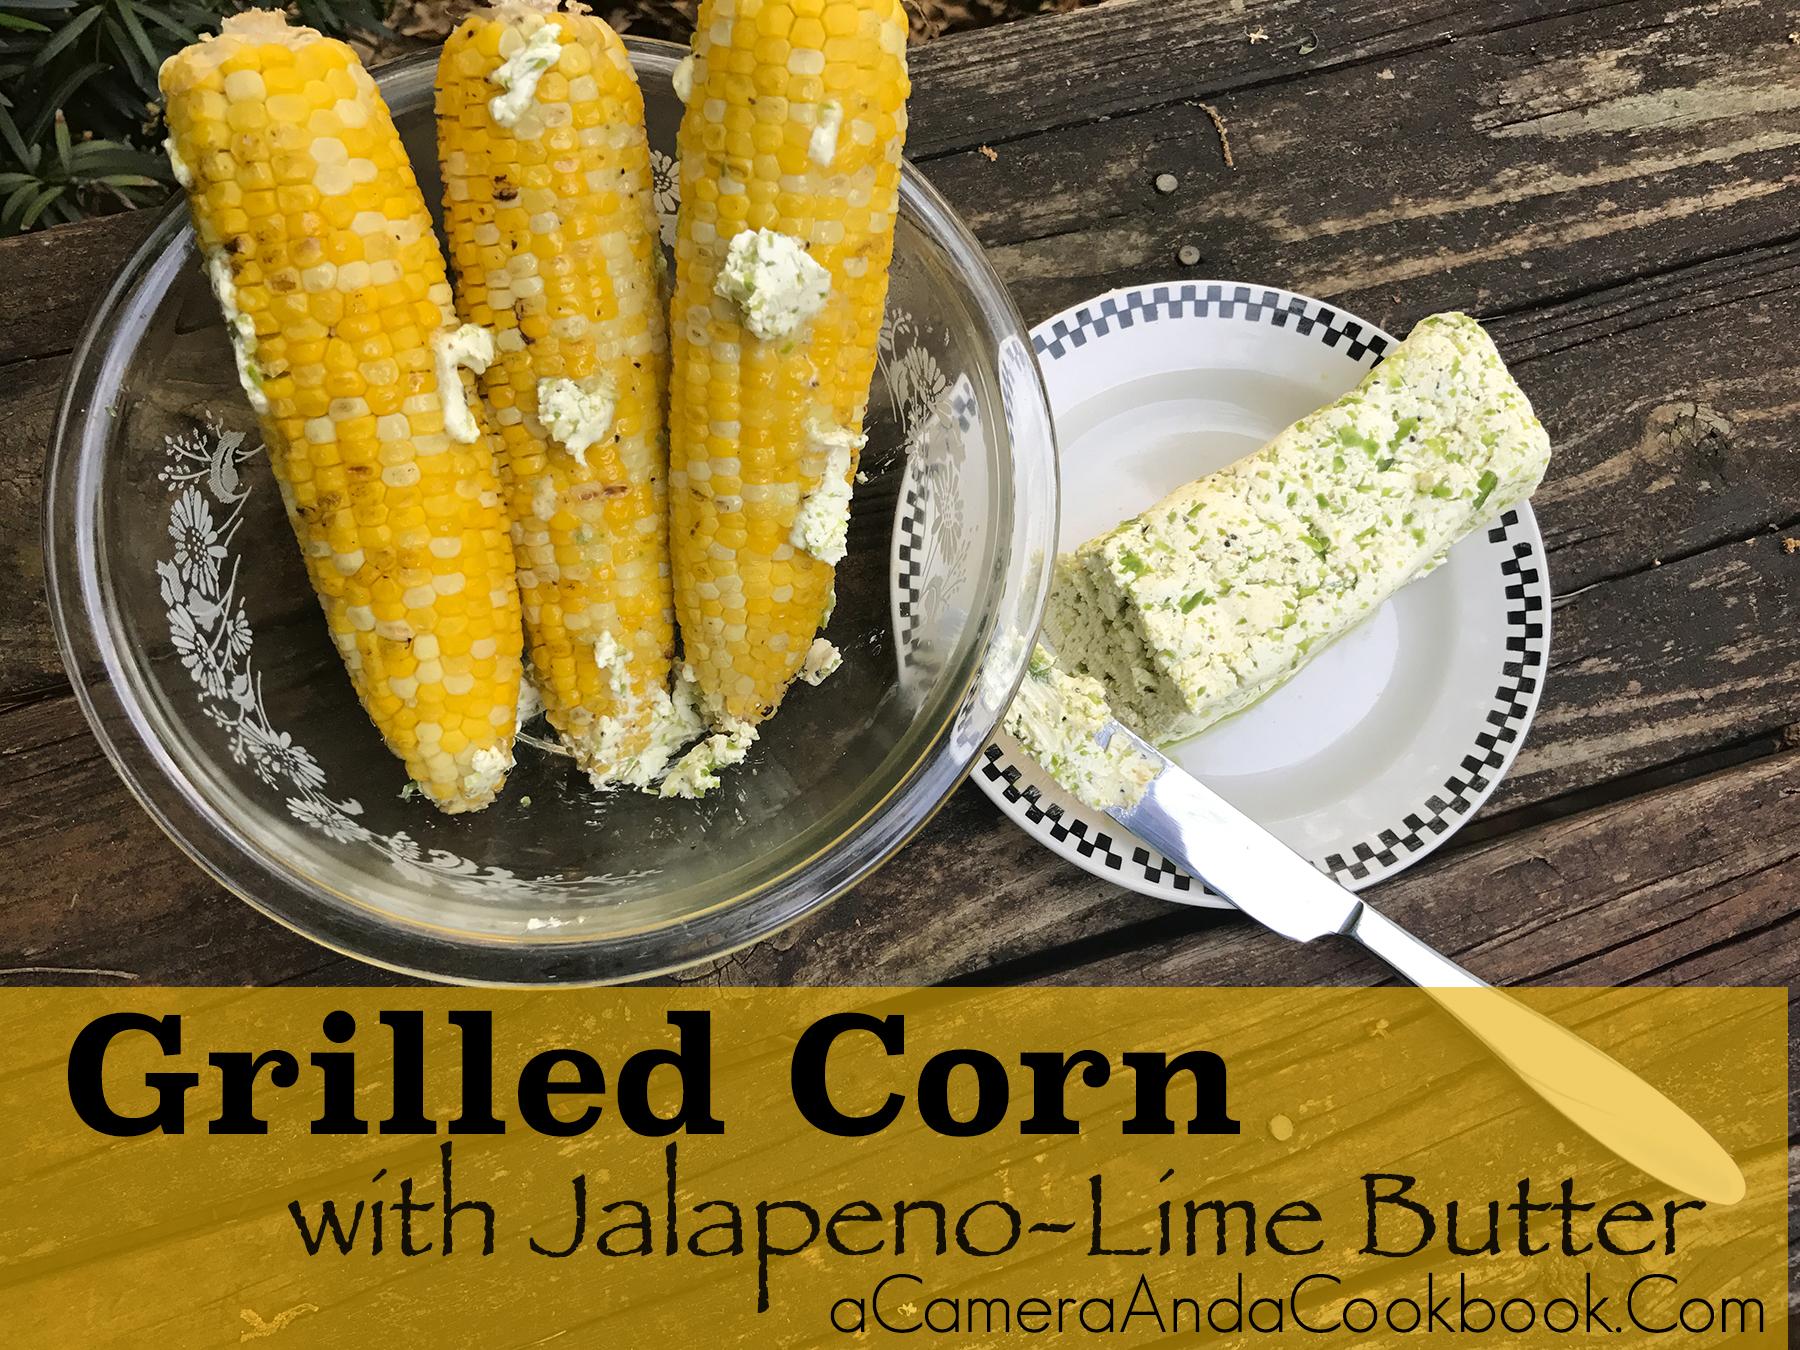 Grilled Corn with Jalapeno-Lime Butter